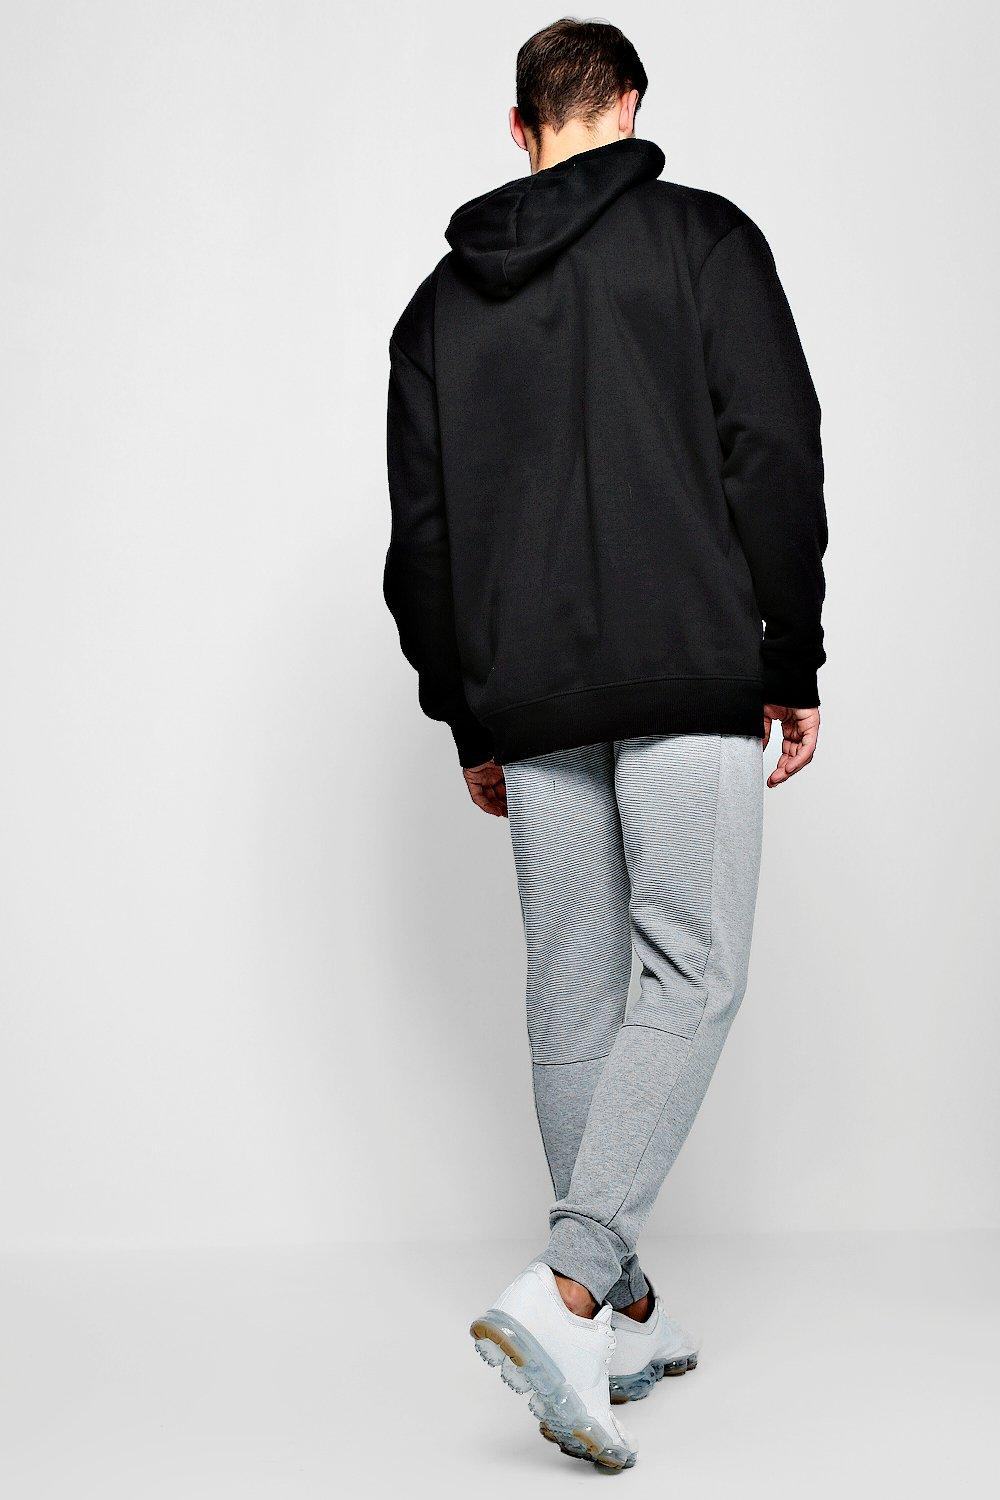 Joggers marl Jersey Side Panel Checked grey SnfqpRW